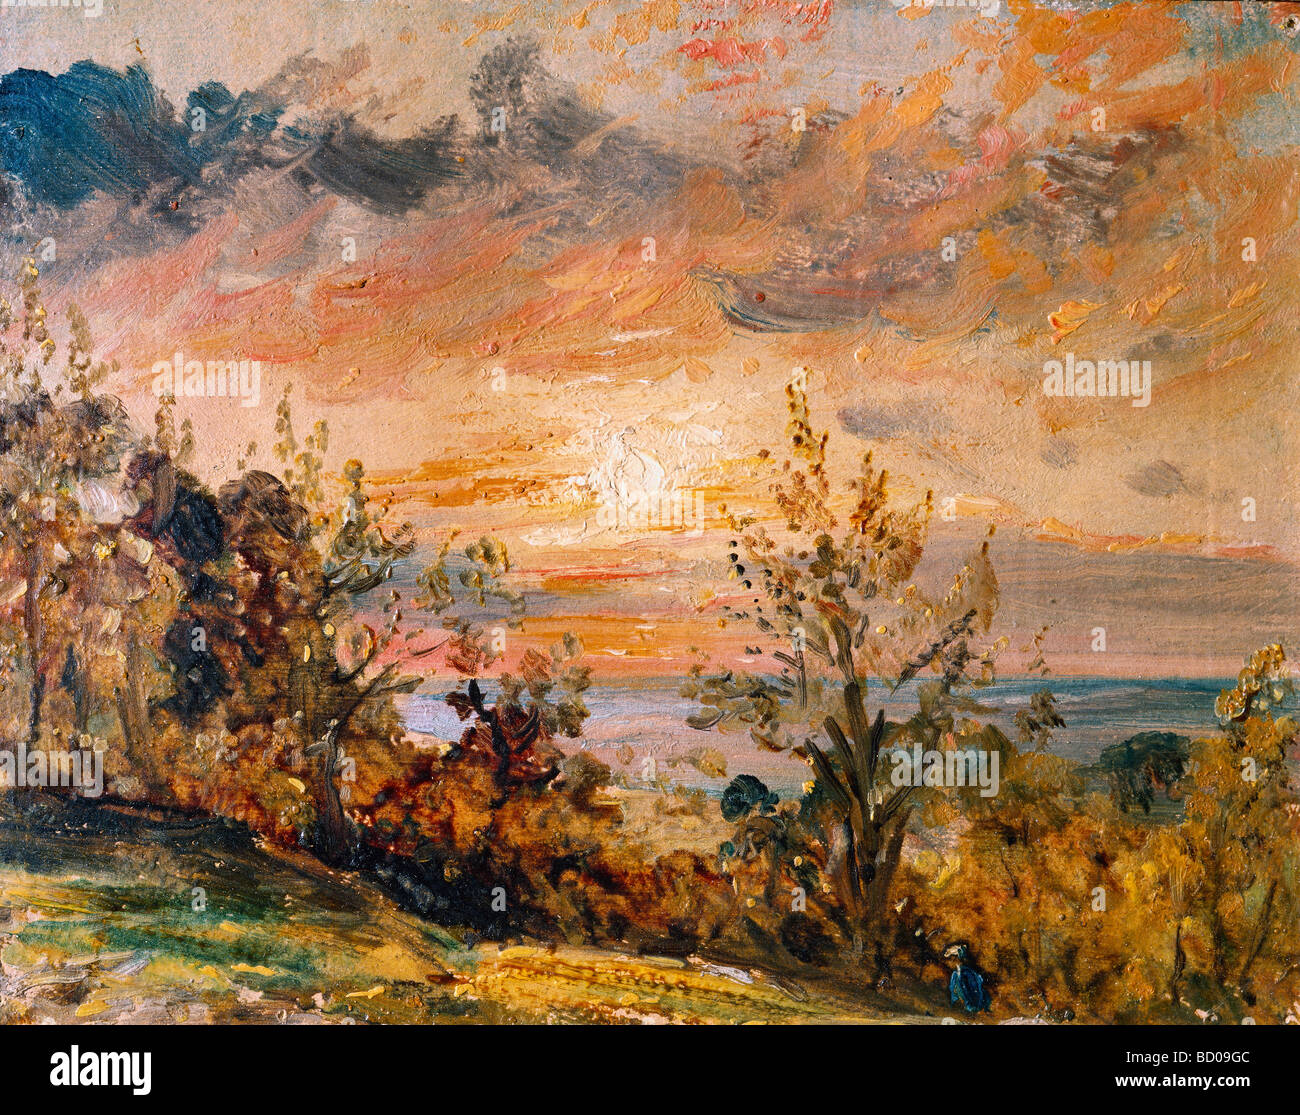 Sketch at Hampstead, by John Constable. London, England, 1820 - Stock Image